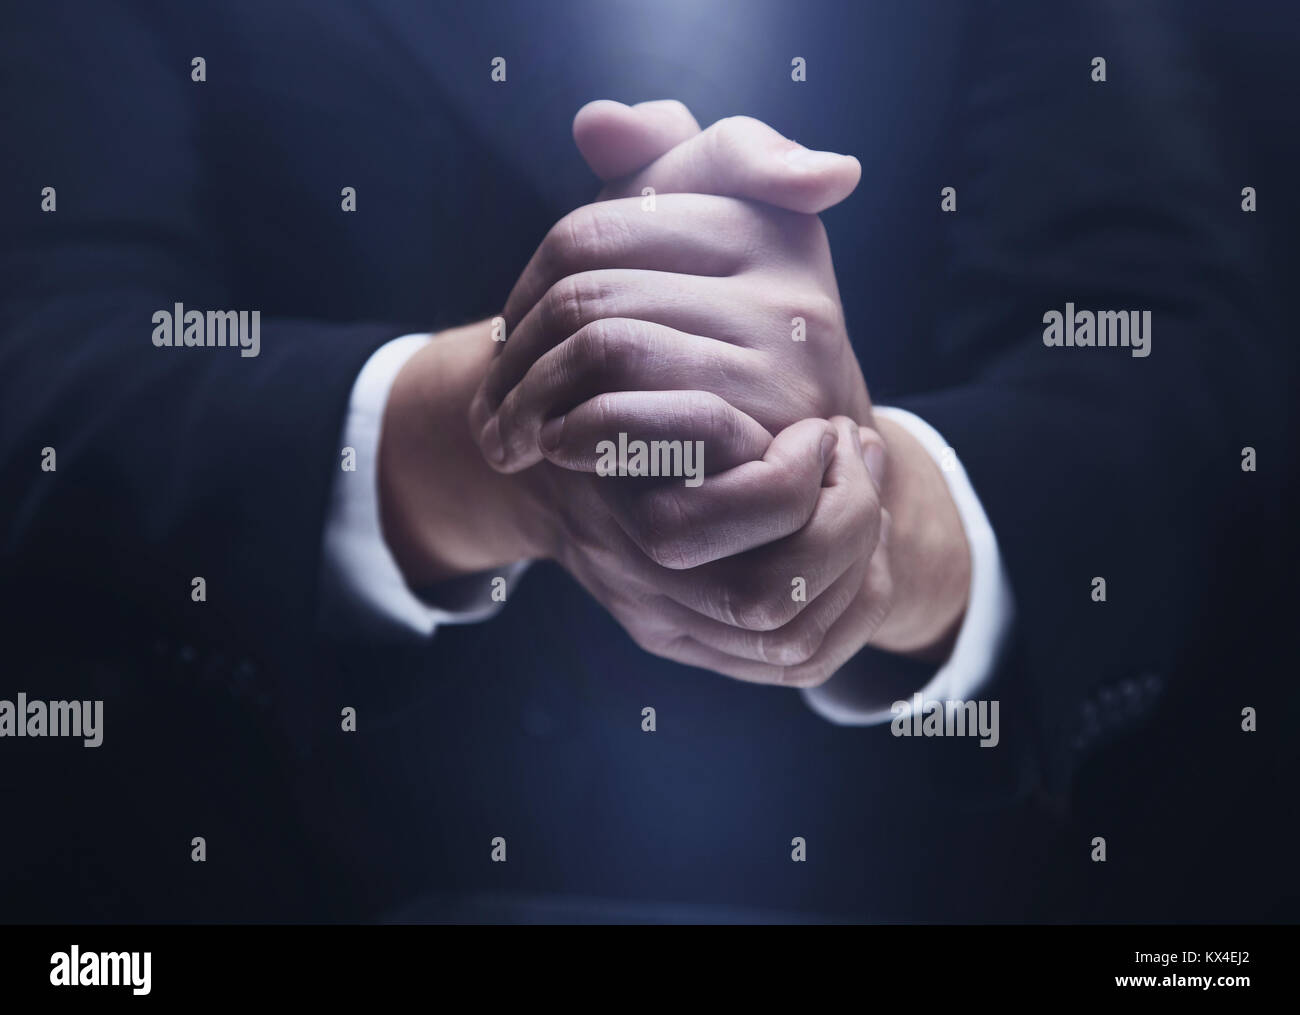 Praying hands on black backgroun - Stock Image